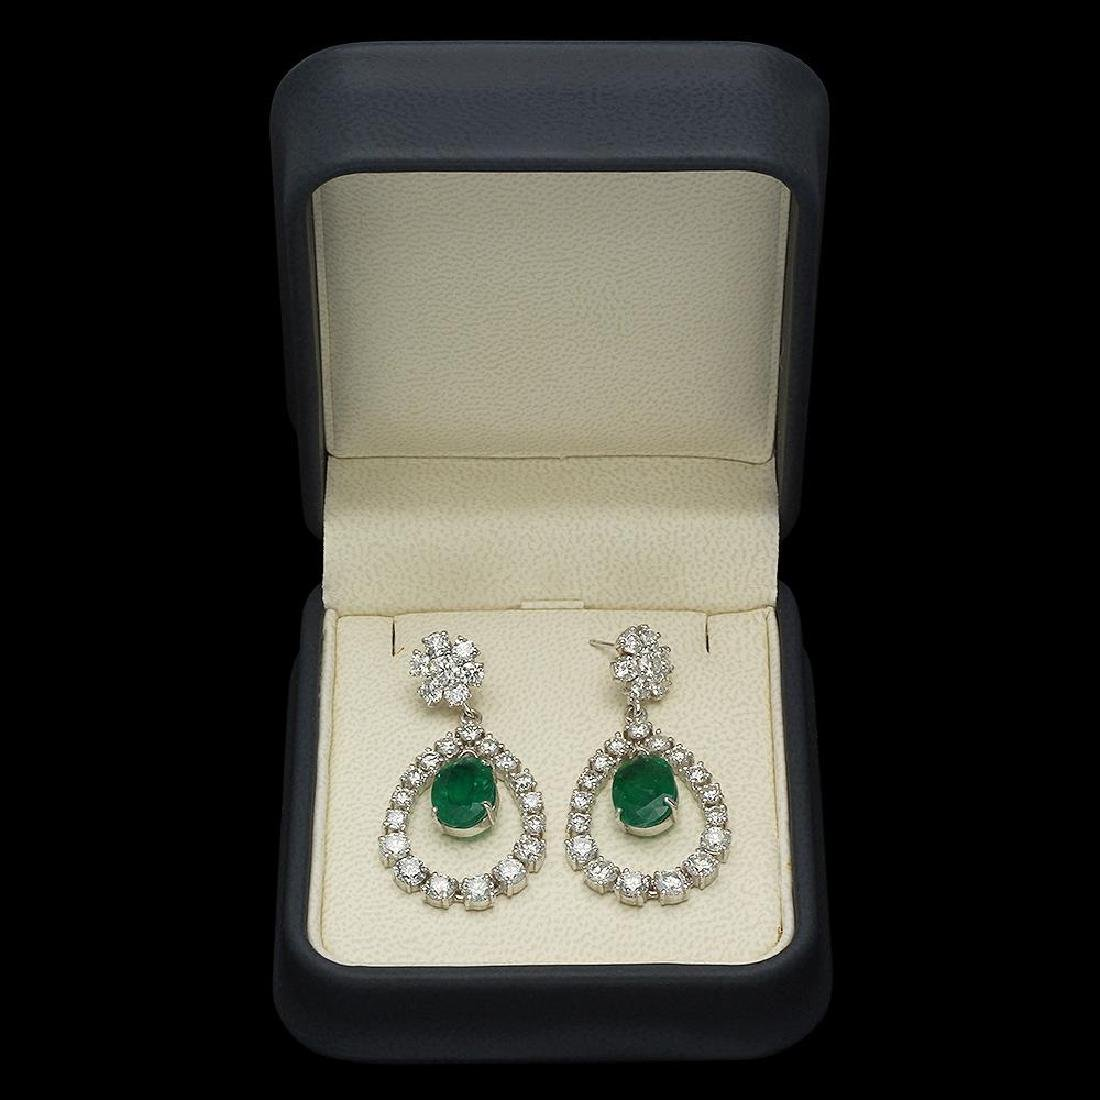 14K Gold 5.83ct Emerald 7.00ct Diamond Earrings - 2